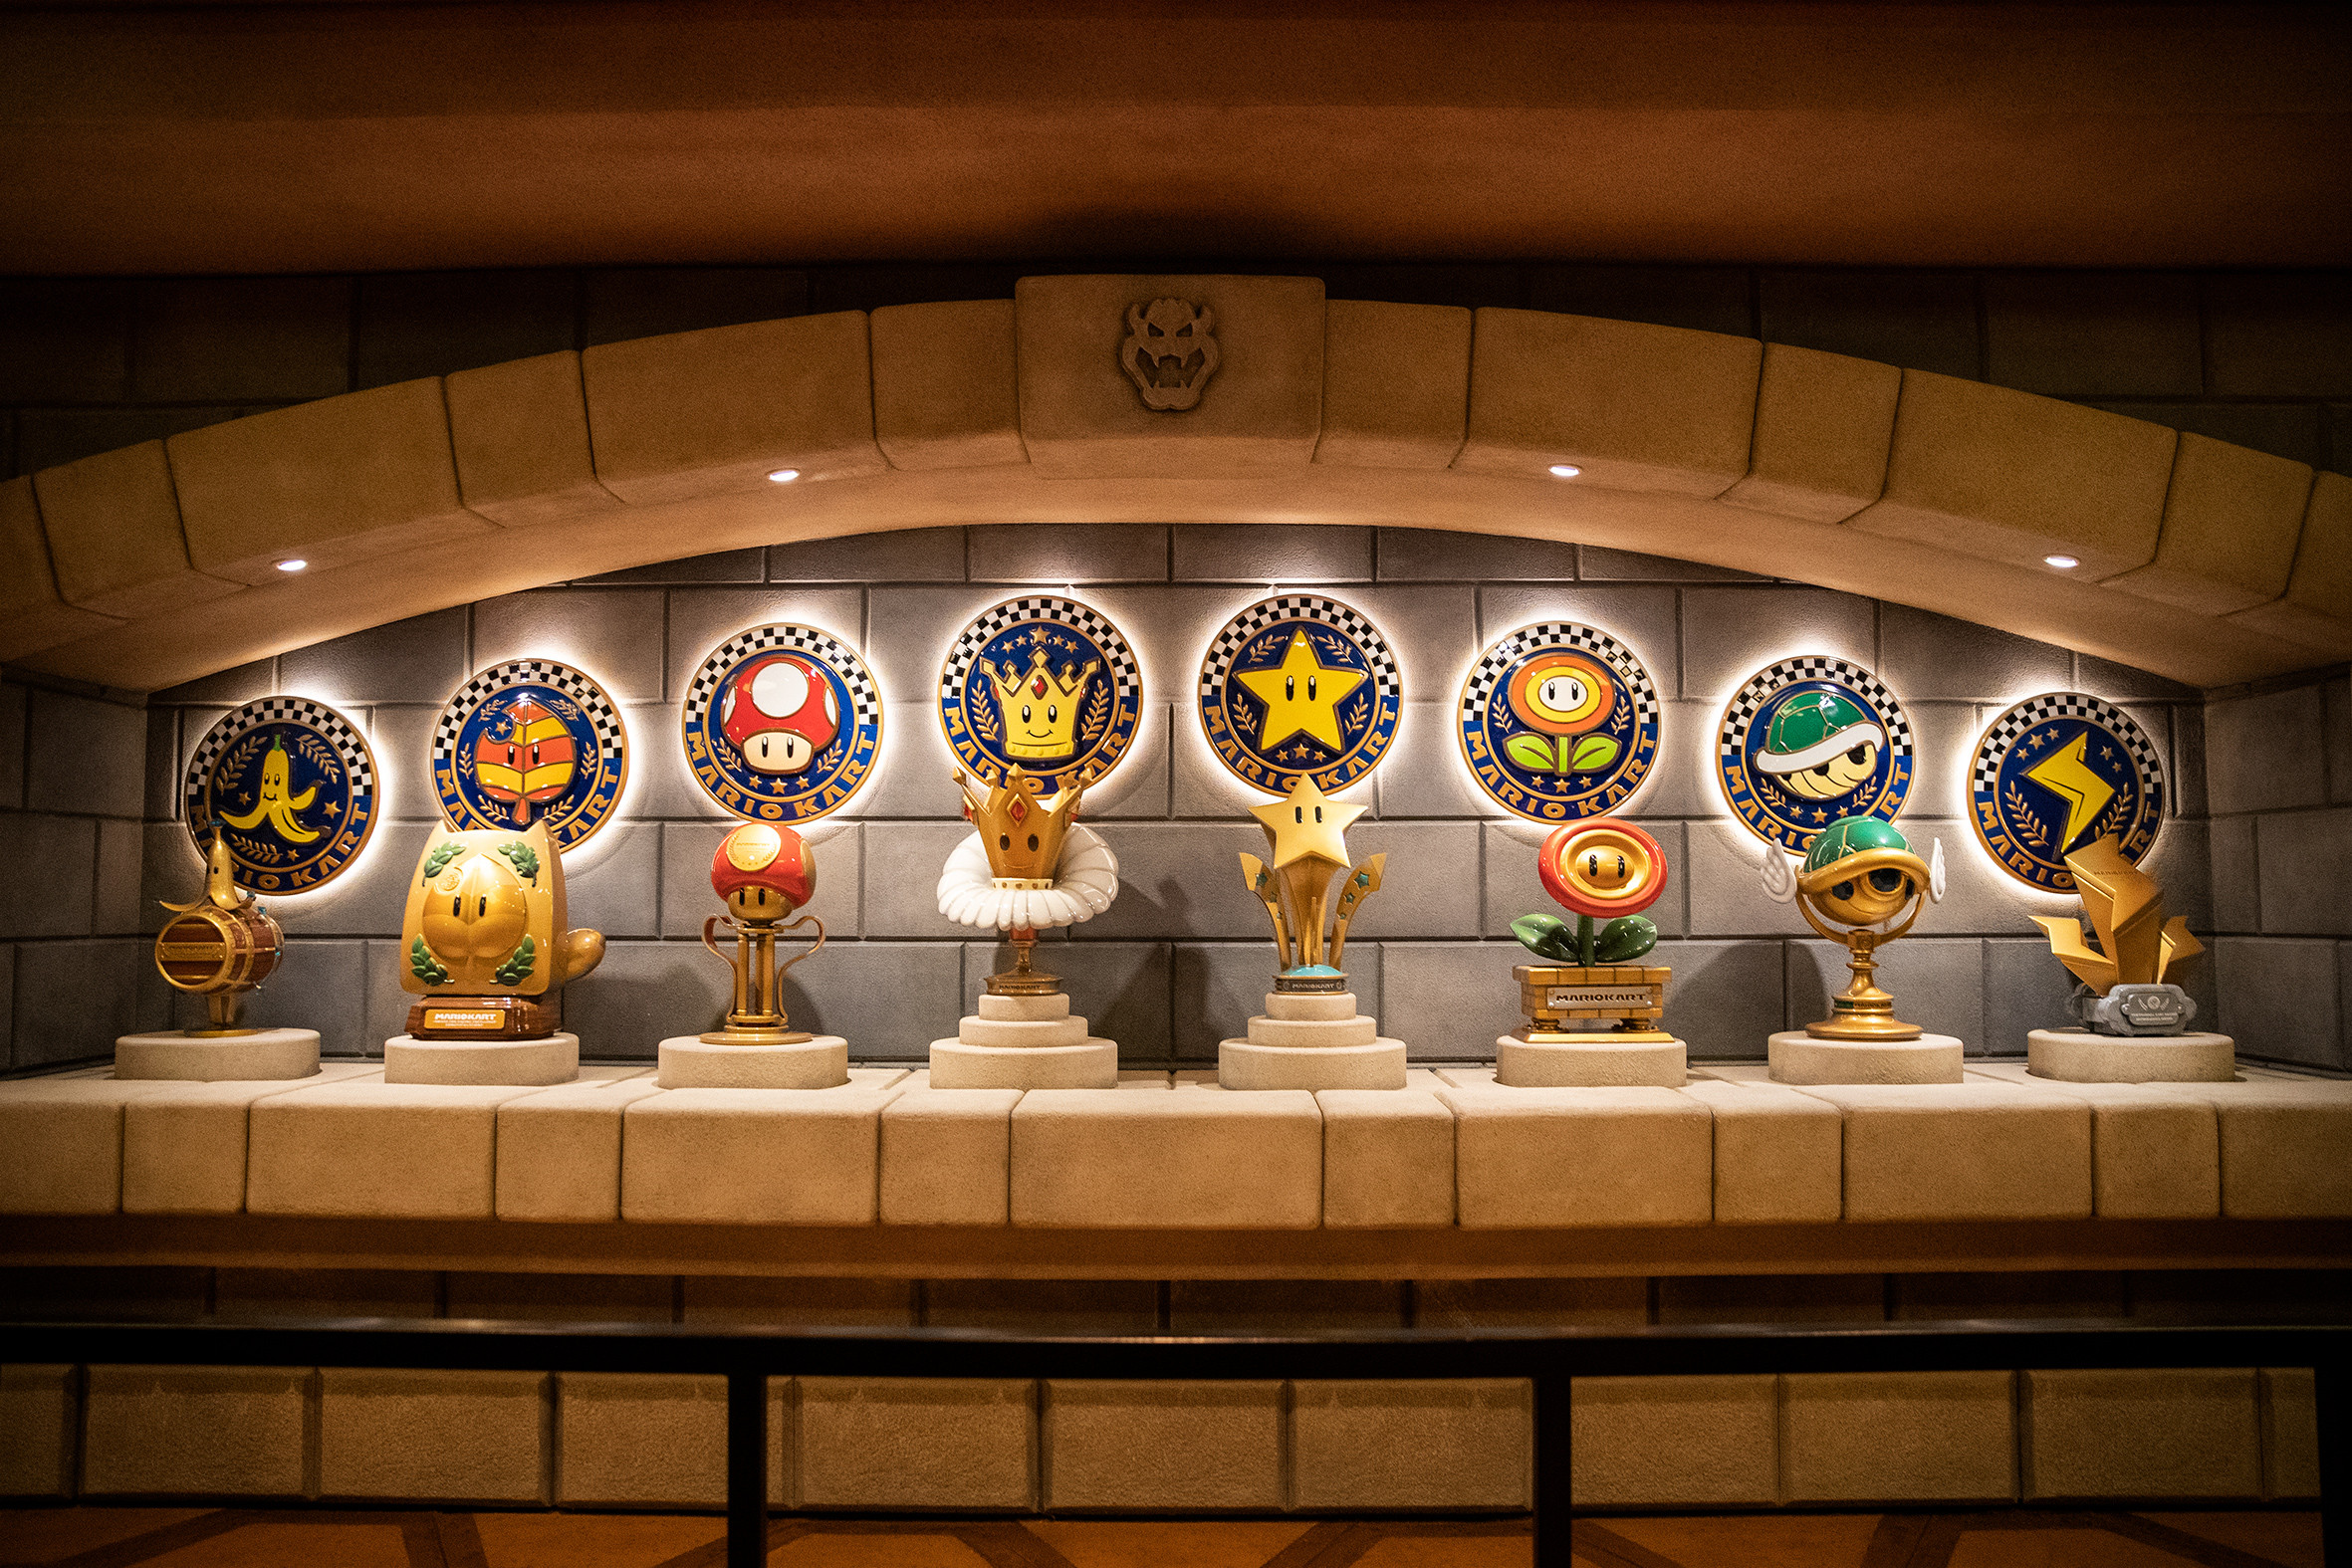 Detail of trophy case showcasing both medallions and trophies from the Mario Kart series. Photo credit: Universal and Nintendo